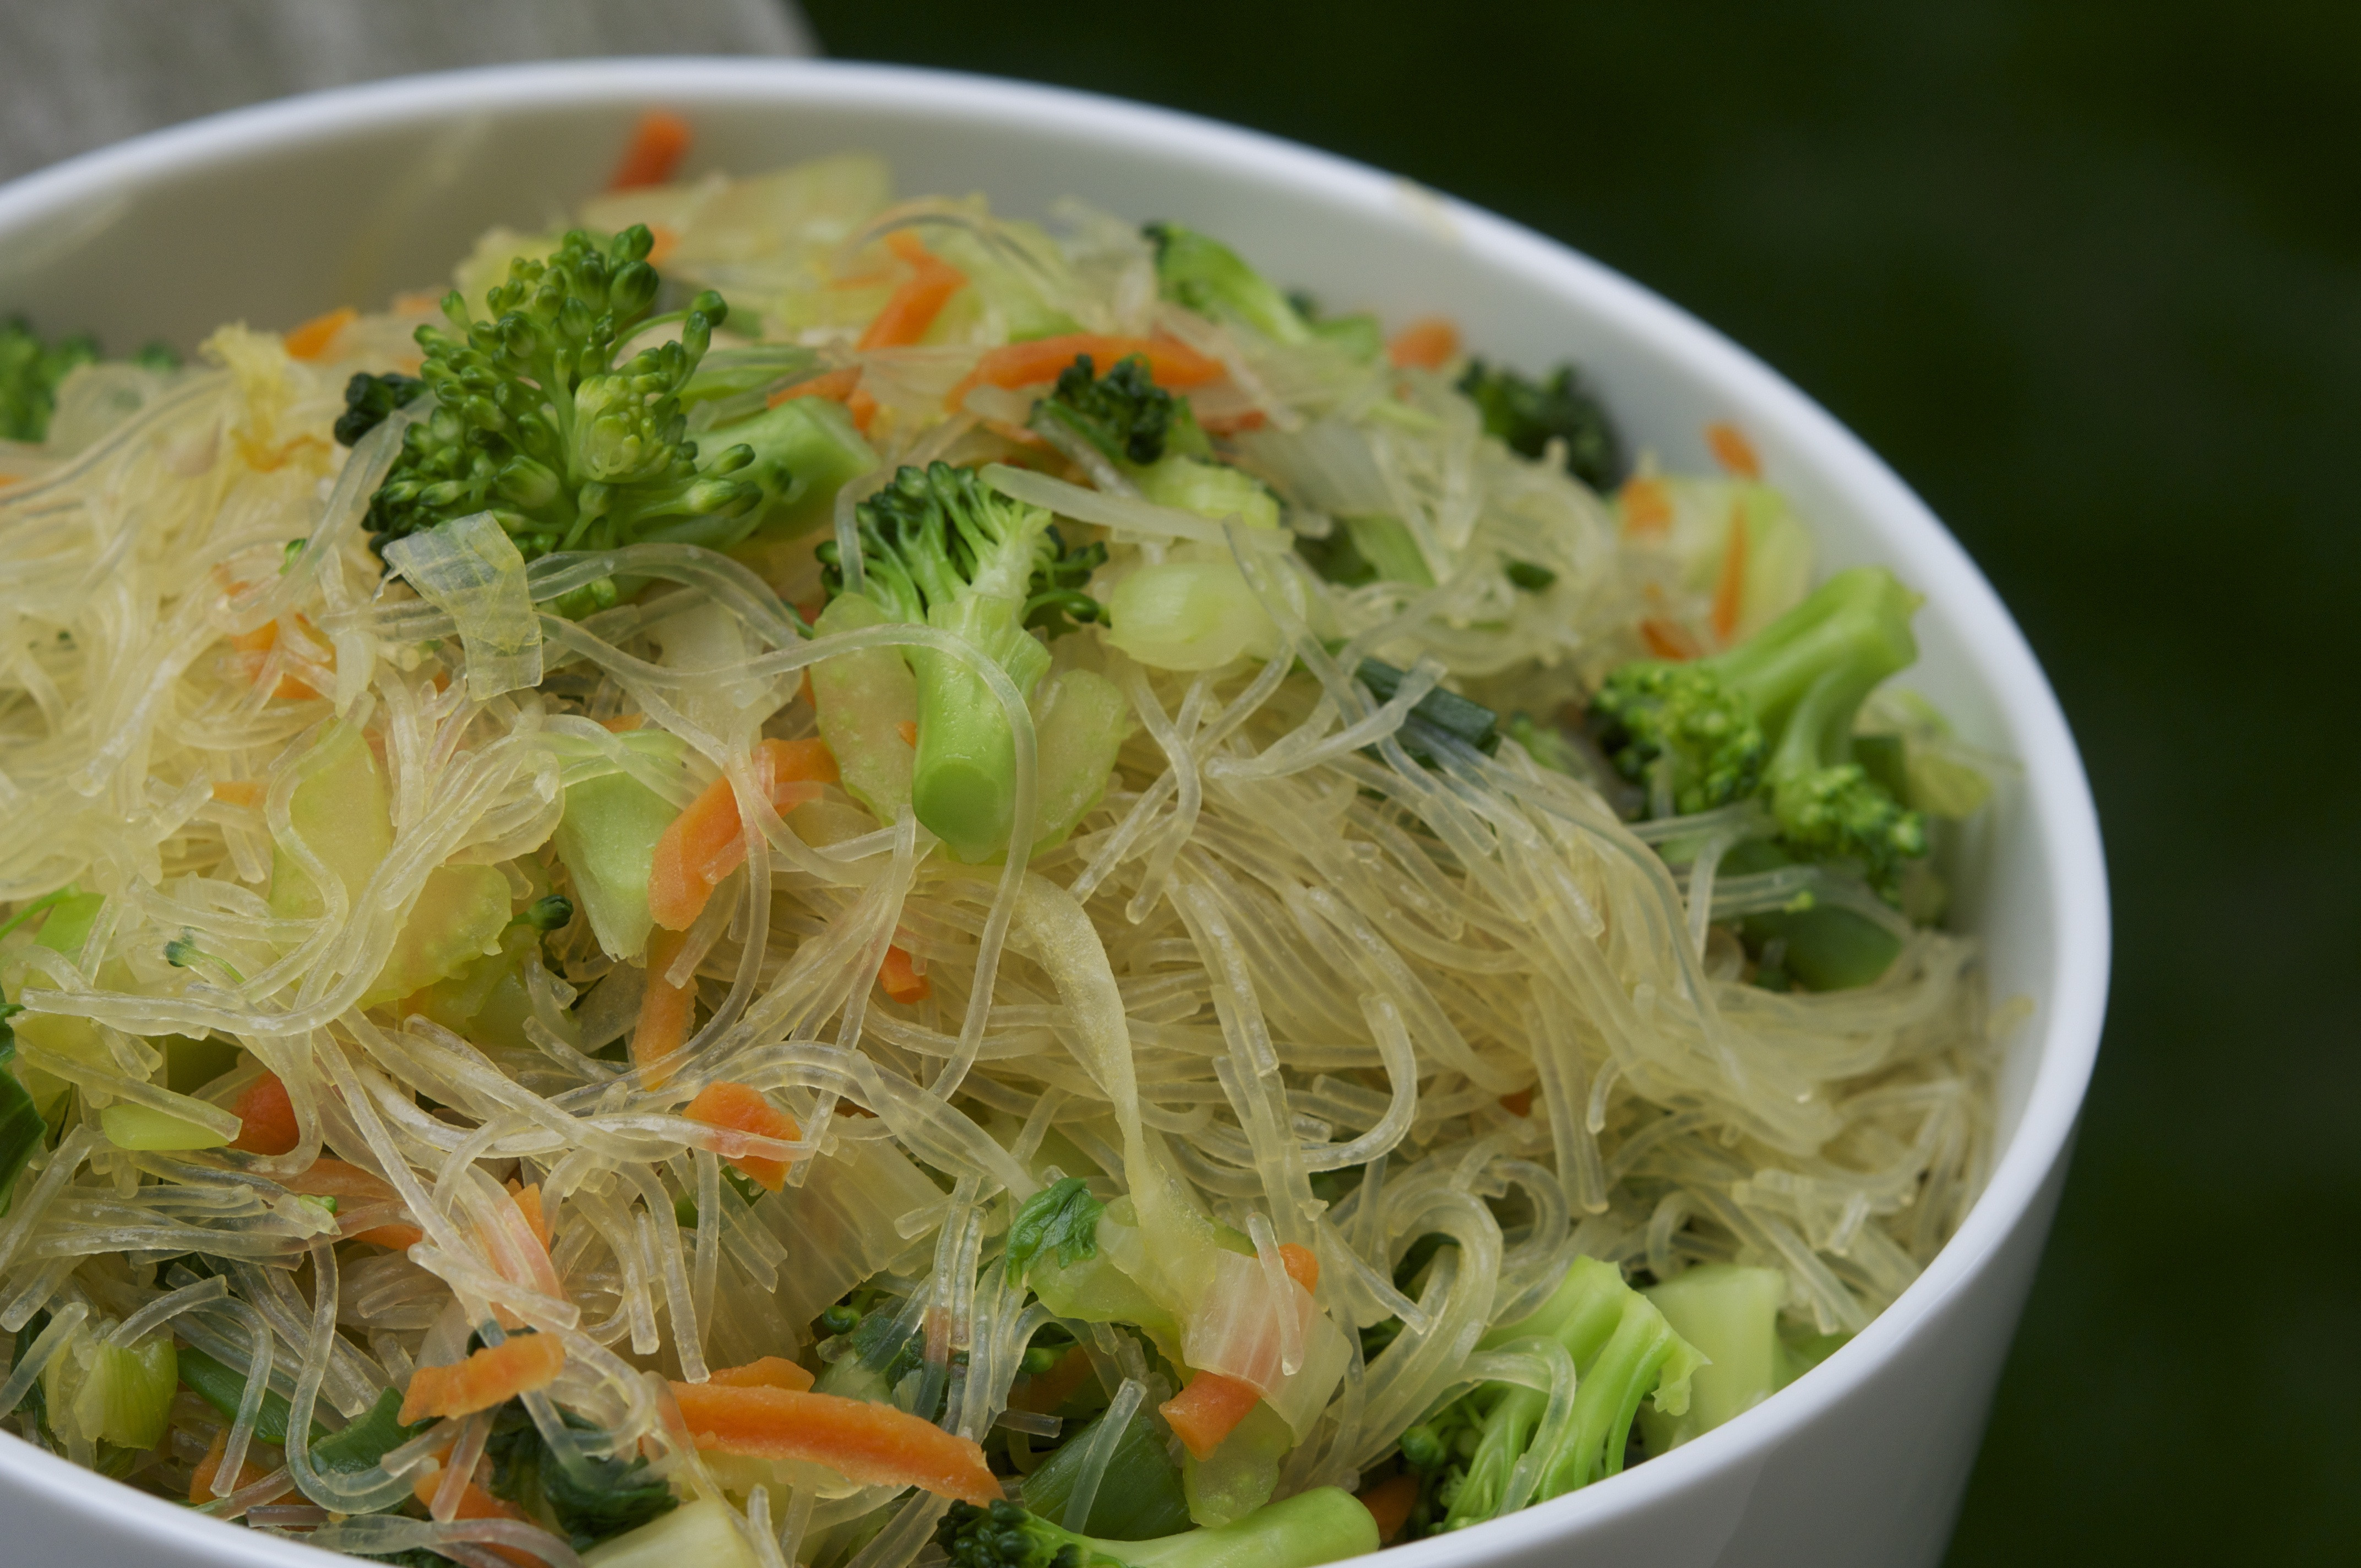 Recipes With Rice Noodles  STIR FRIED RICE NOODLES WITH VEGETABLES